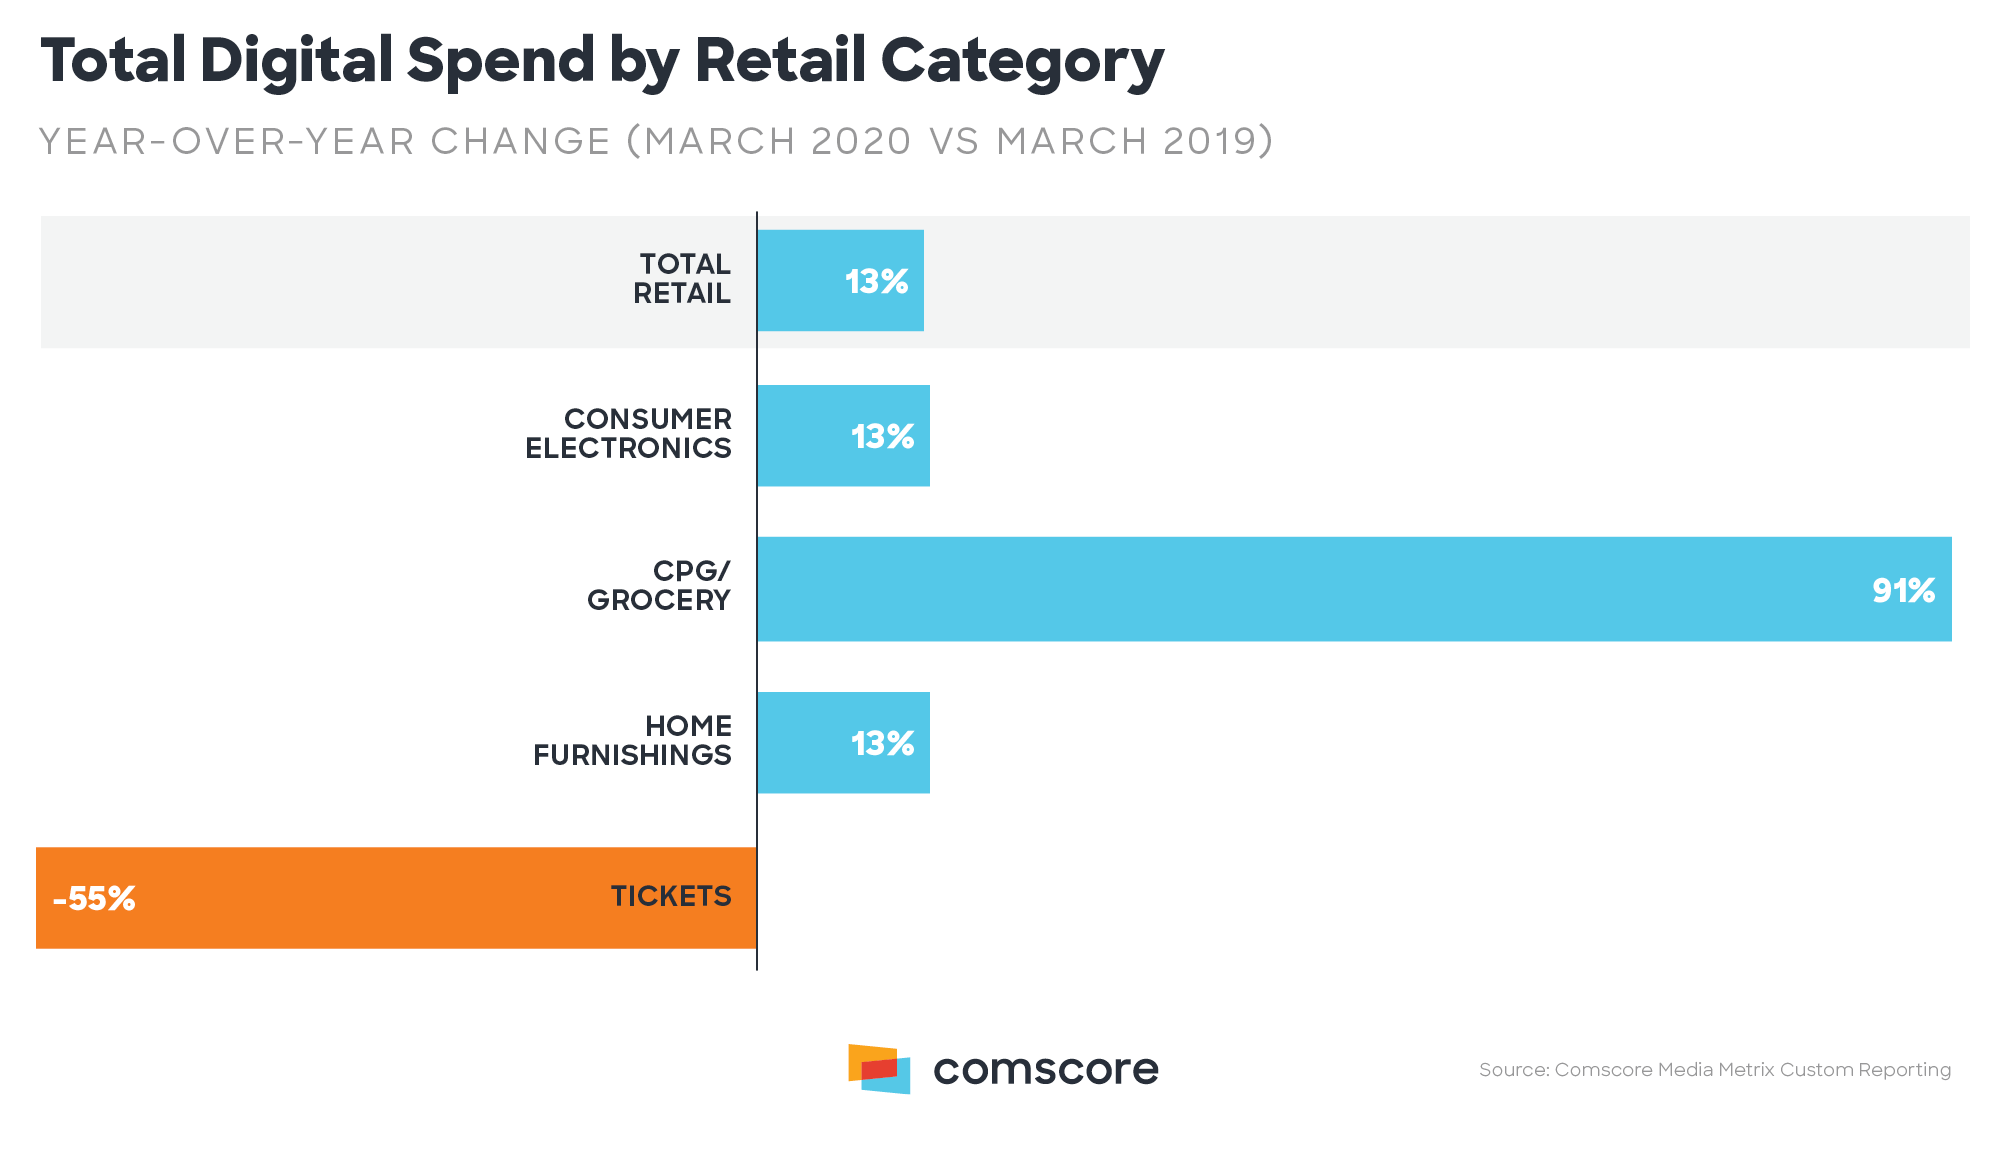 Top Digital Spend by Retail Category